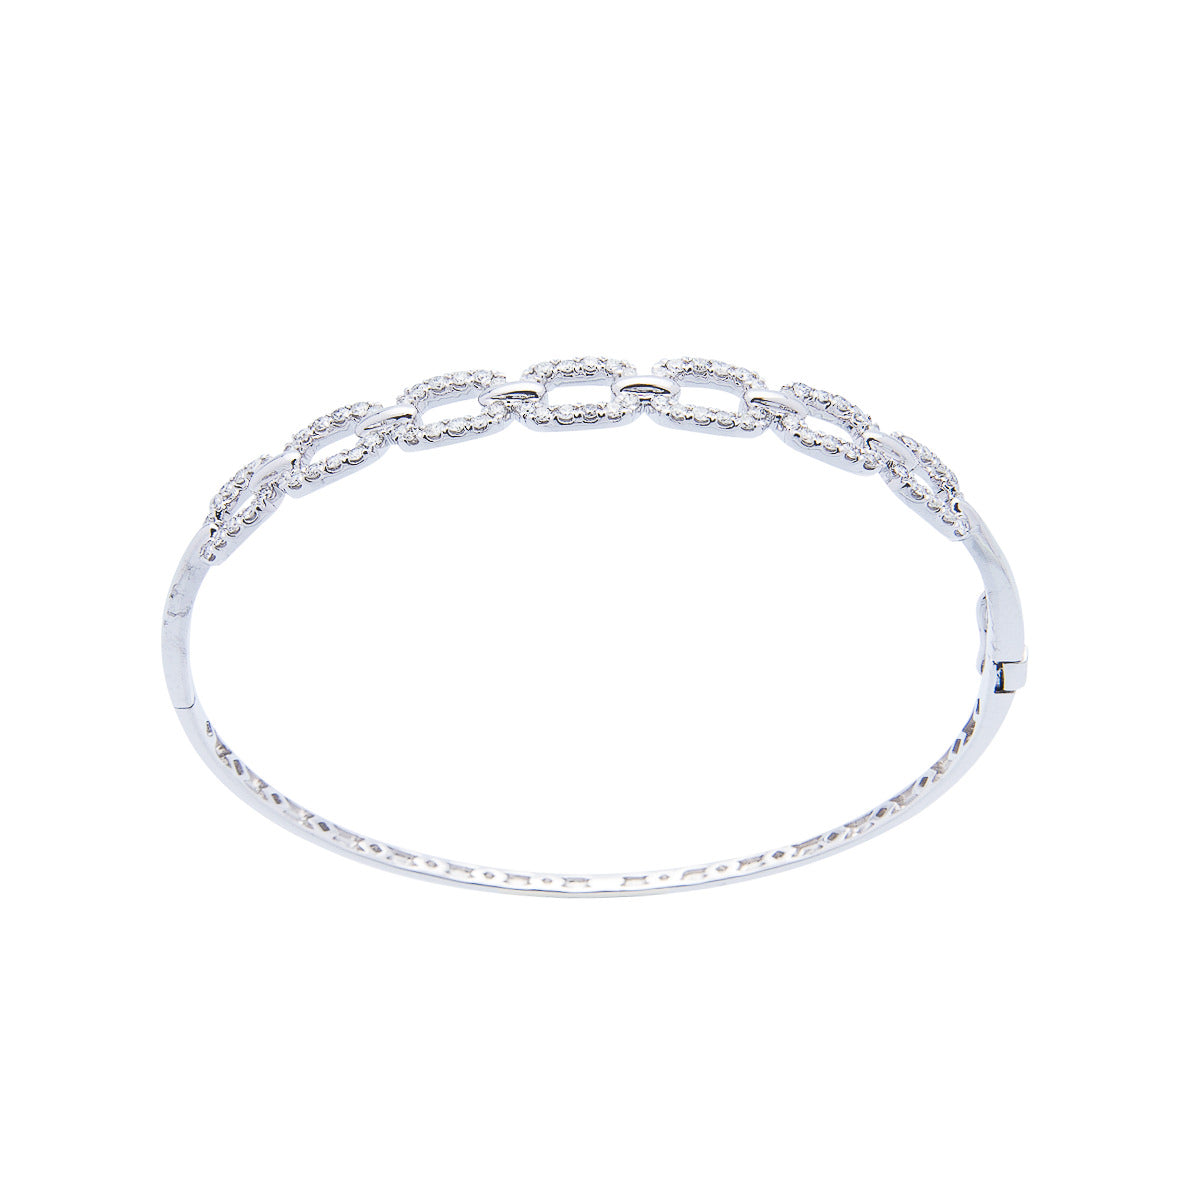 White Gold Bracelet with Diamond Accents